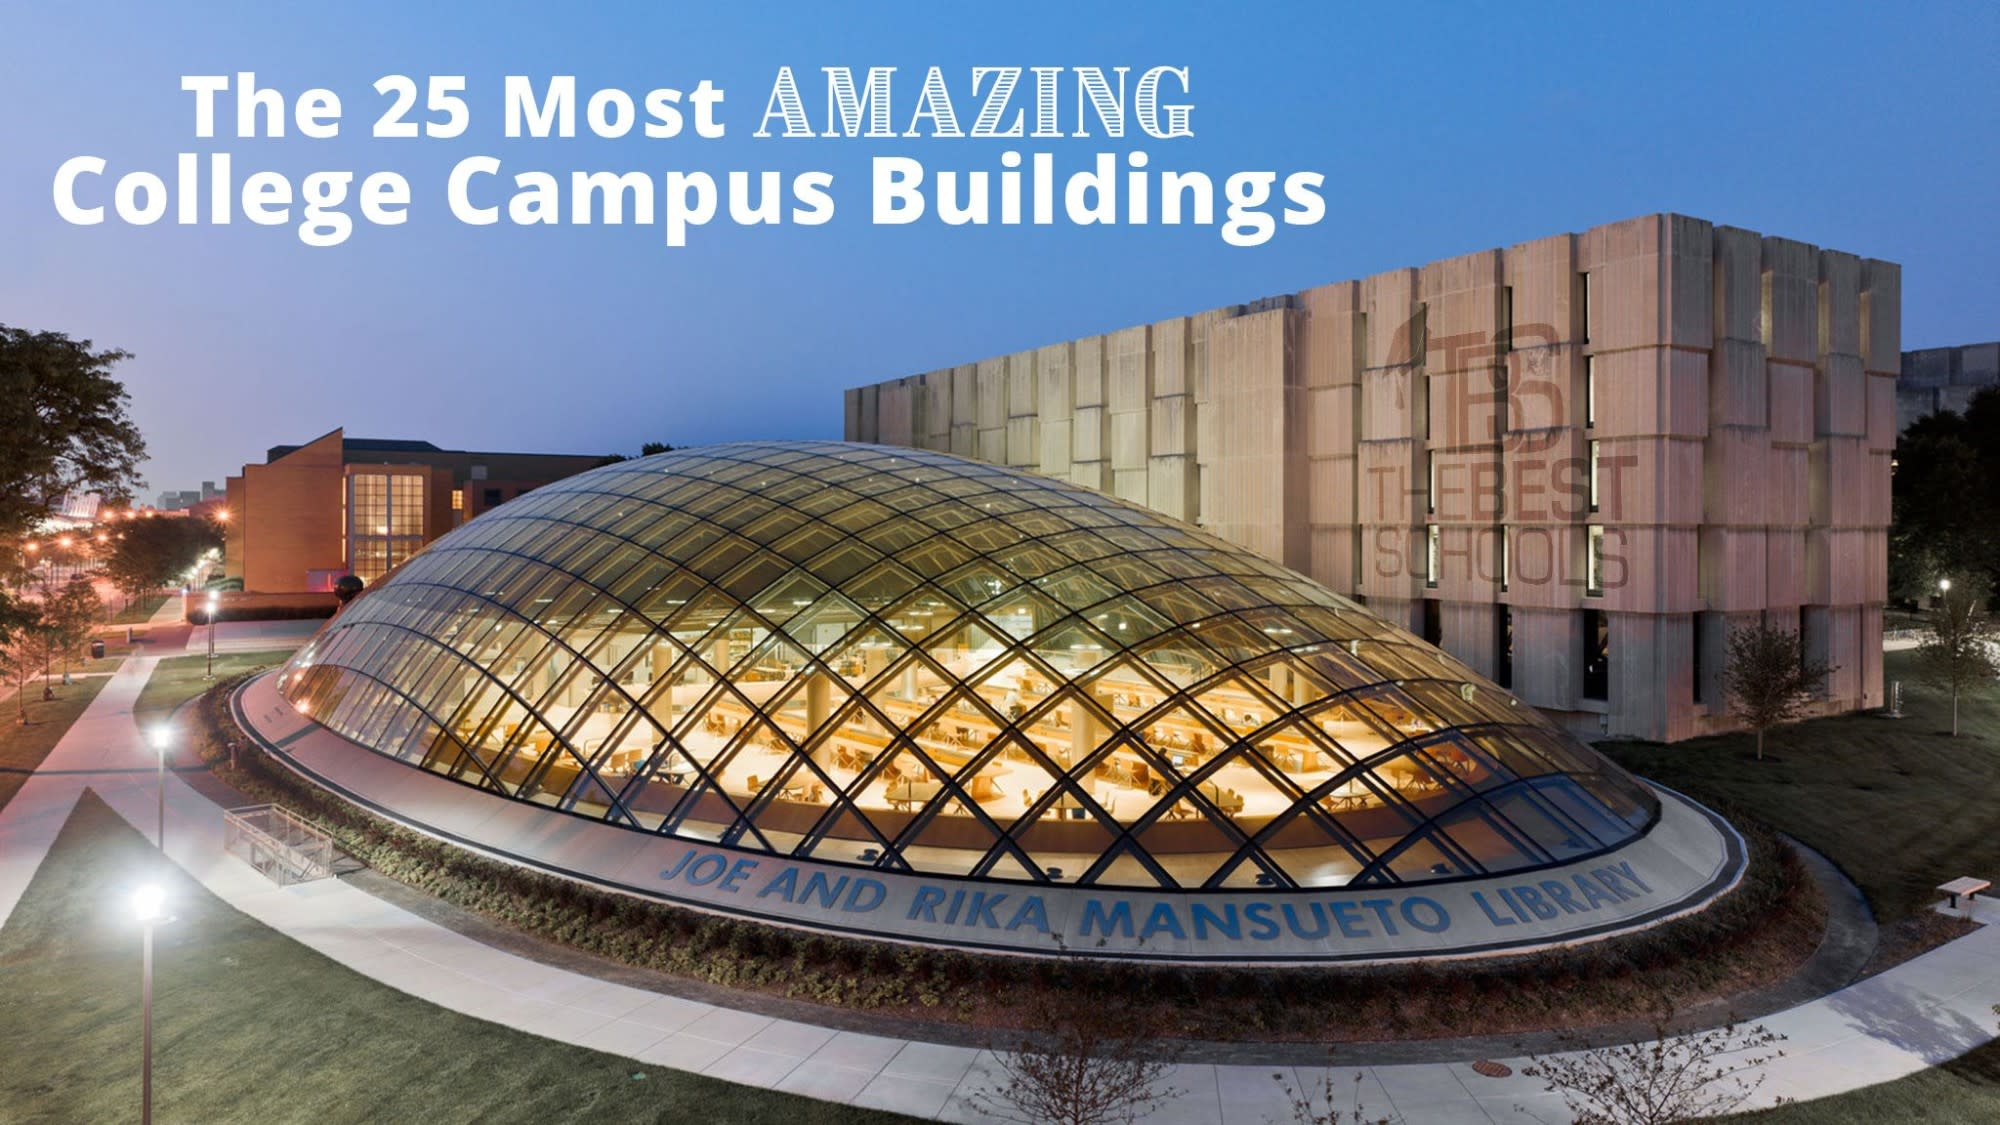 The 25 Most Amazing College Campus Buildings | TheBestSchools.org